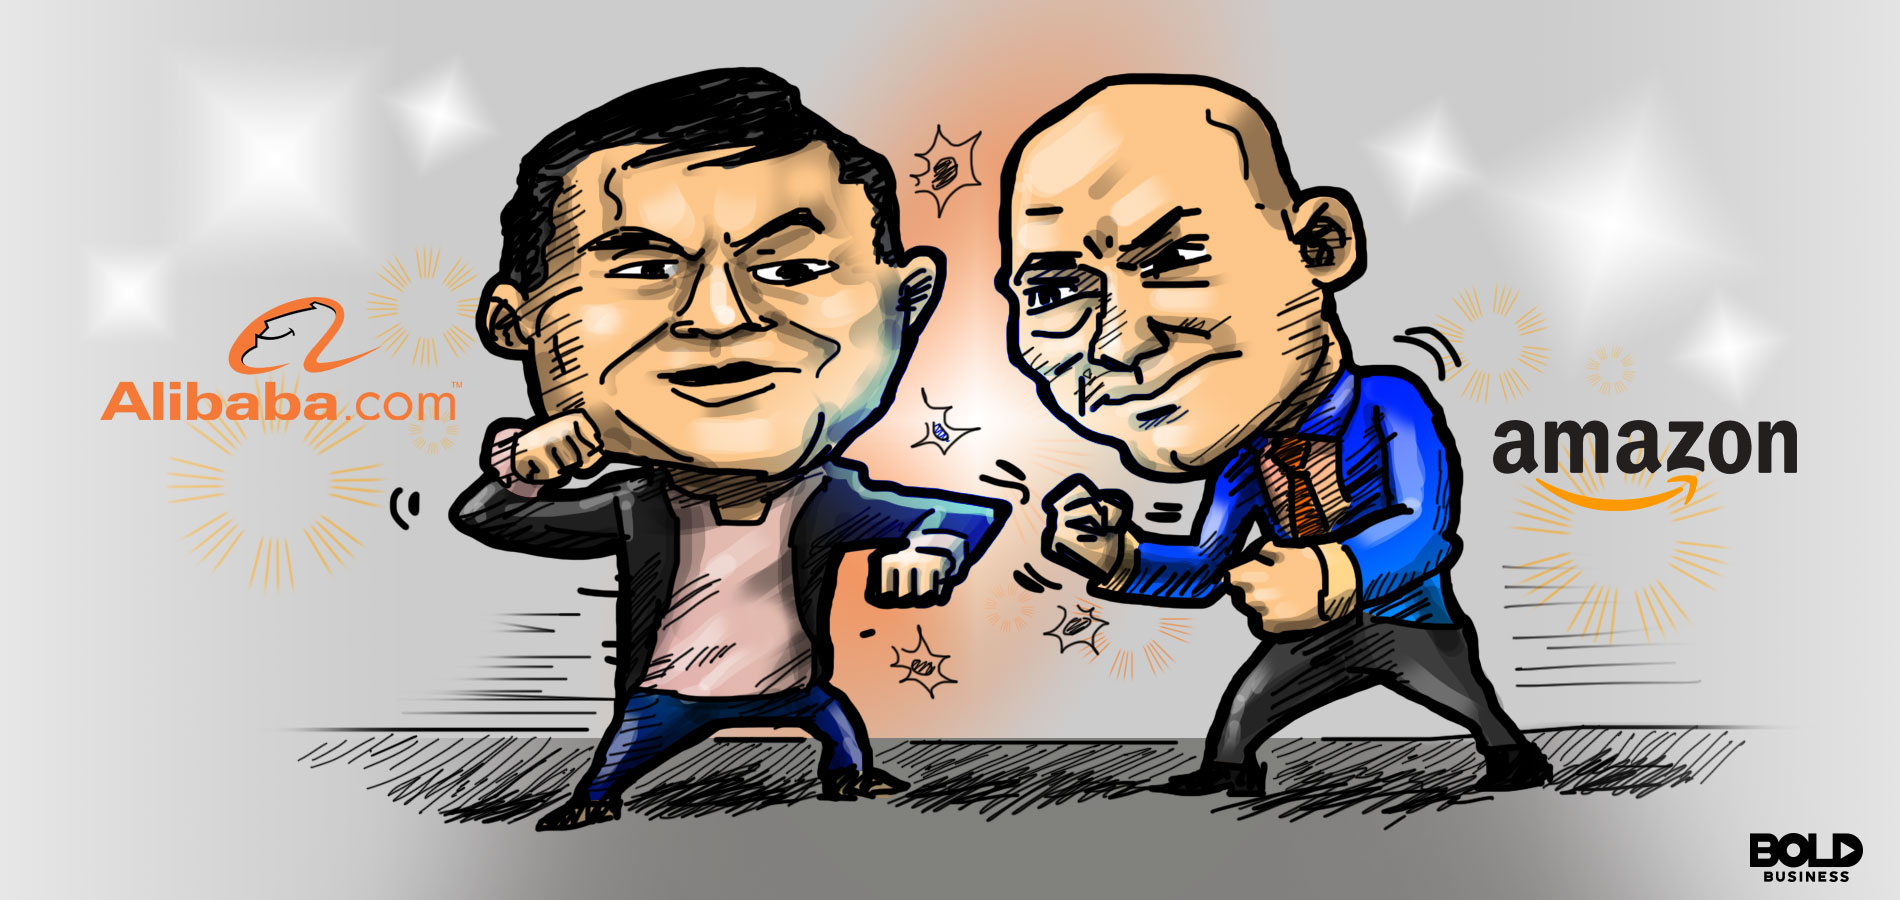 Cartoon of Amazon and Alibaba CEOs with fists up ready to battle